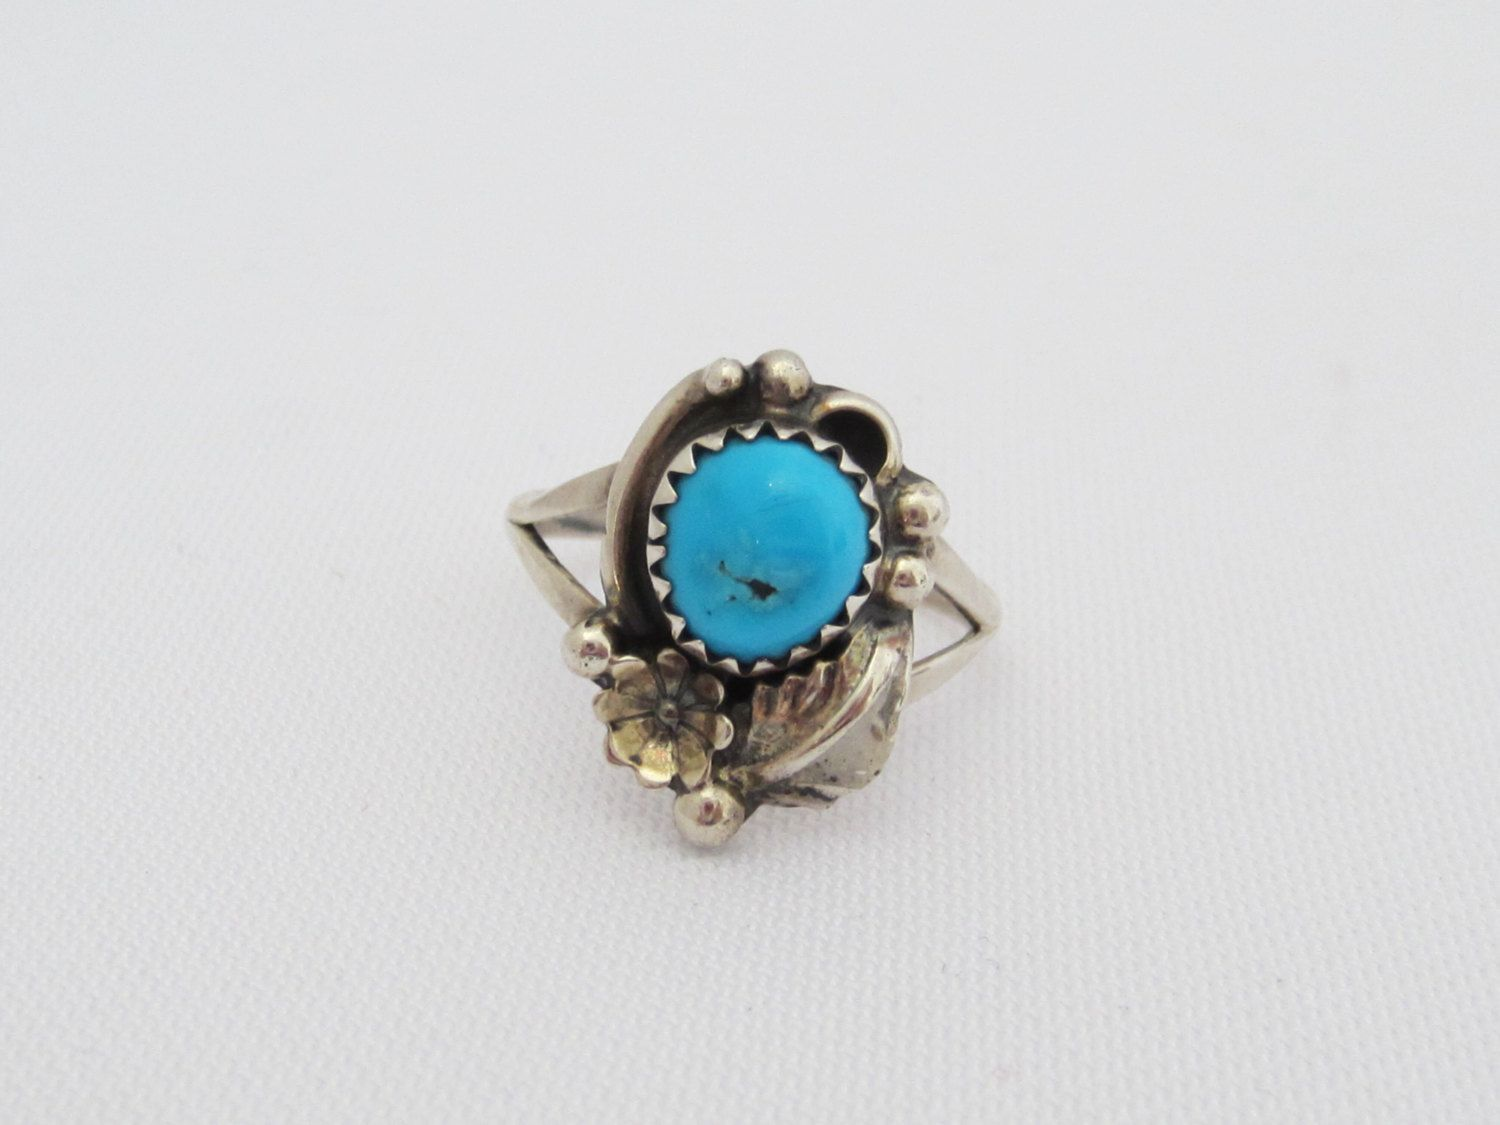 Vintage Sterling Silver Turquoise Ring Size 6.25 by wandajewelry2013 on Etsy